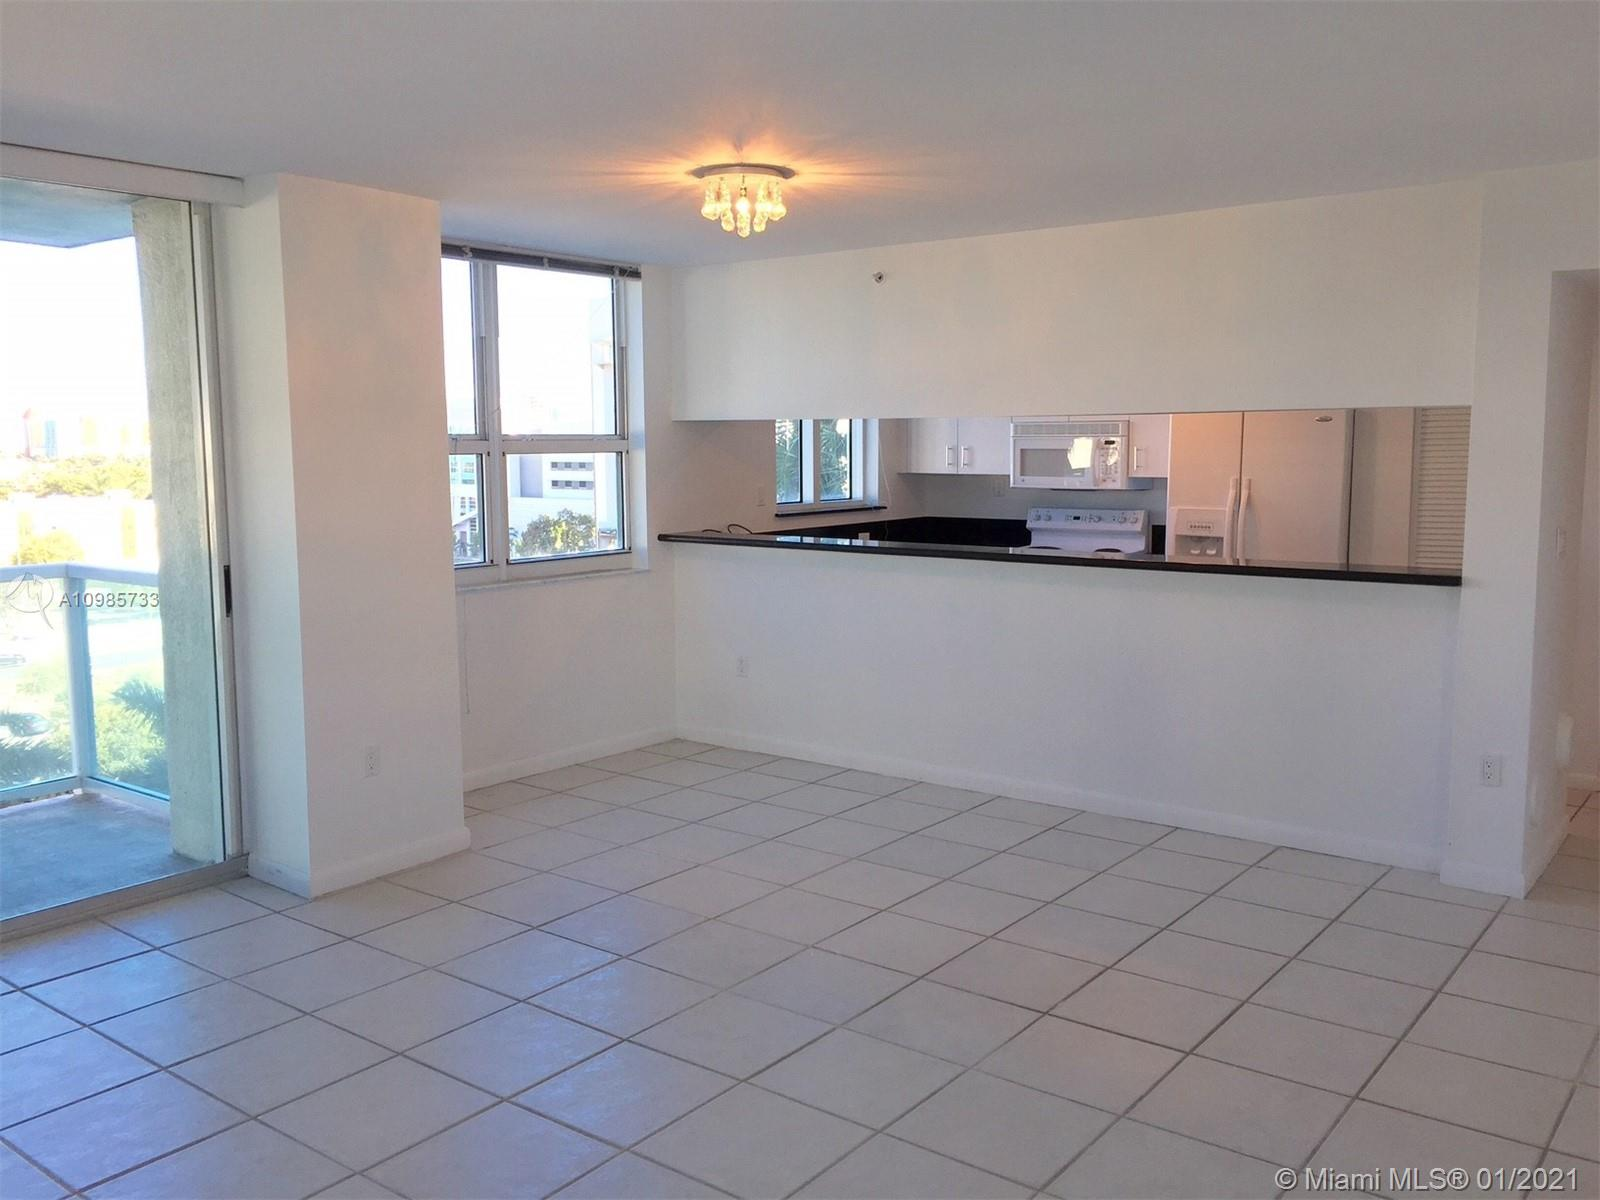 The Floridian #812 - 650 West Ave #812, Miami Beach, FL 33139